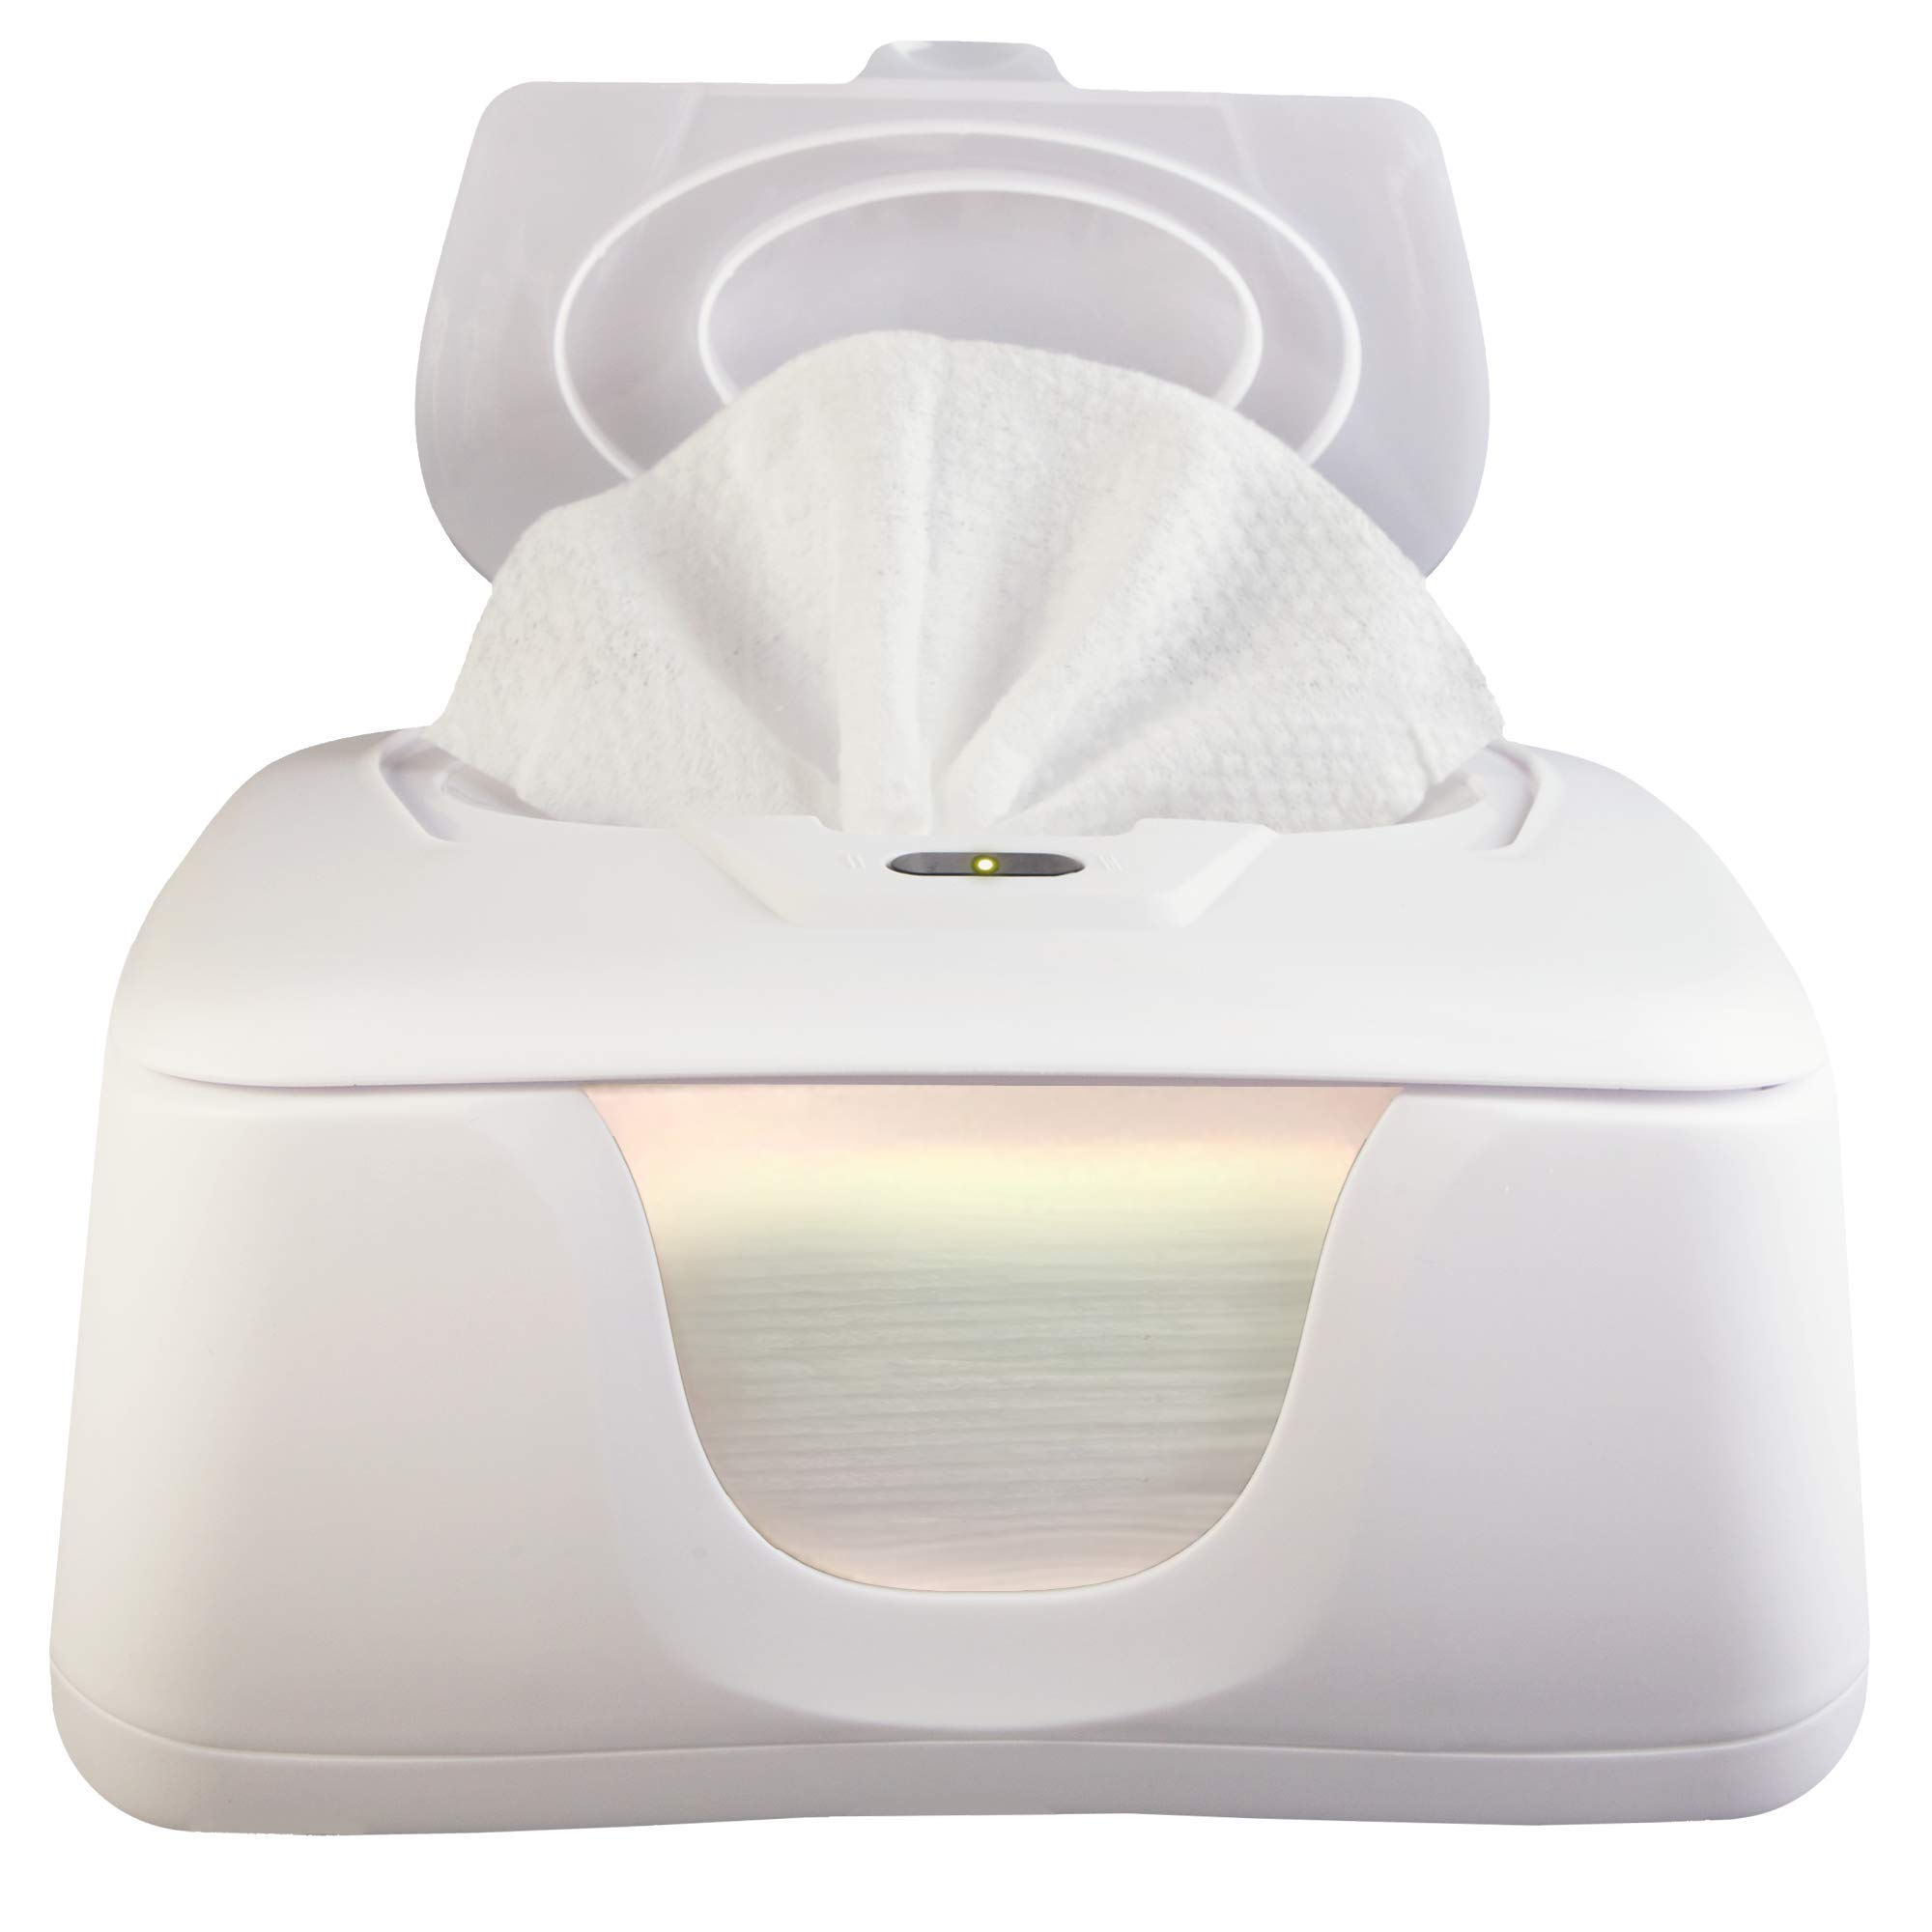 GOGO PURE Baby Wipes Warmer and Dispenser, Advanced Features with 4 Bright Auto/On Off LED Ample Lights for Easy Nighttime Changes, Dual Heat for Baby's Comfort, Improved Design and Only at Amazon